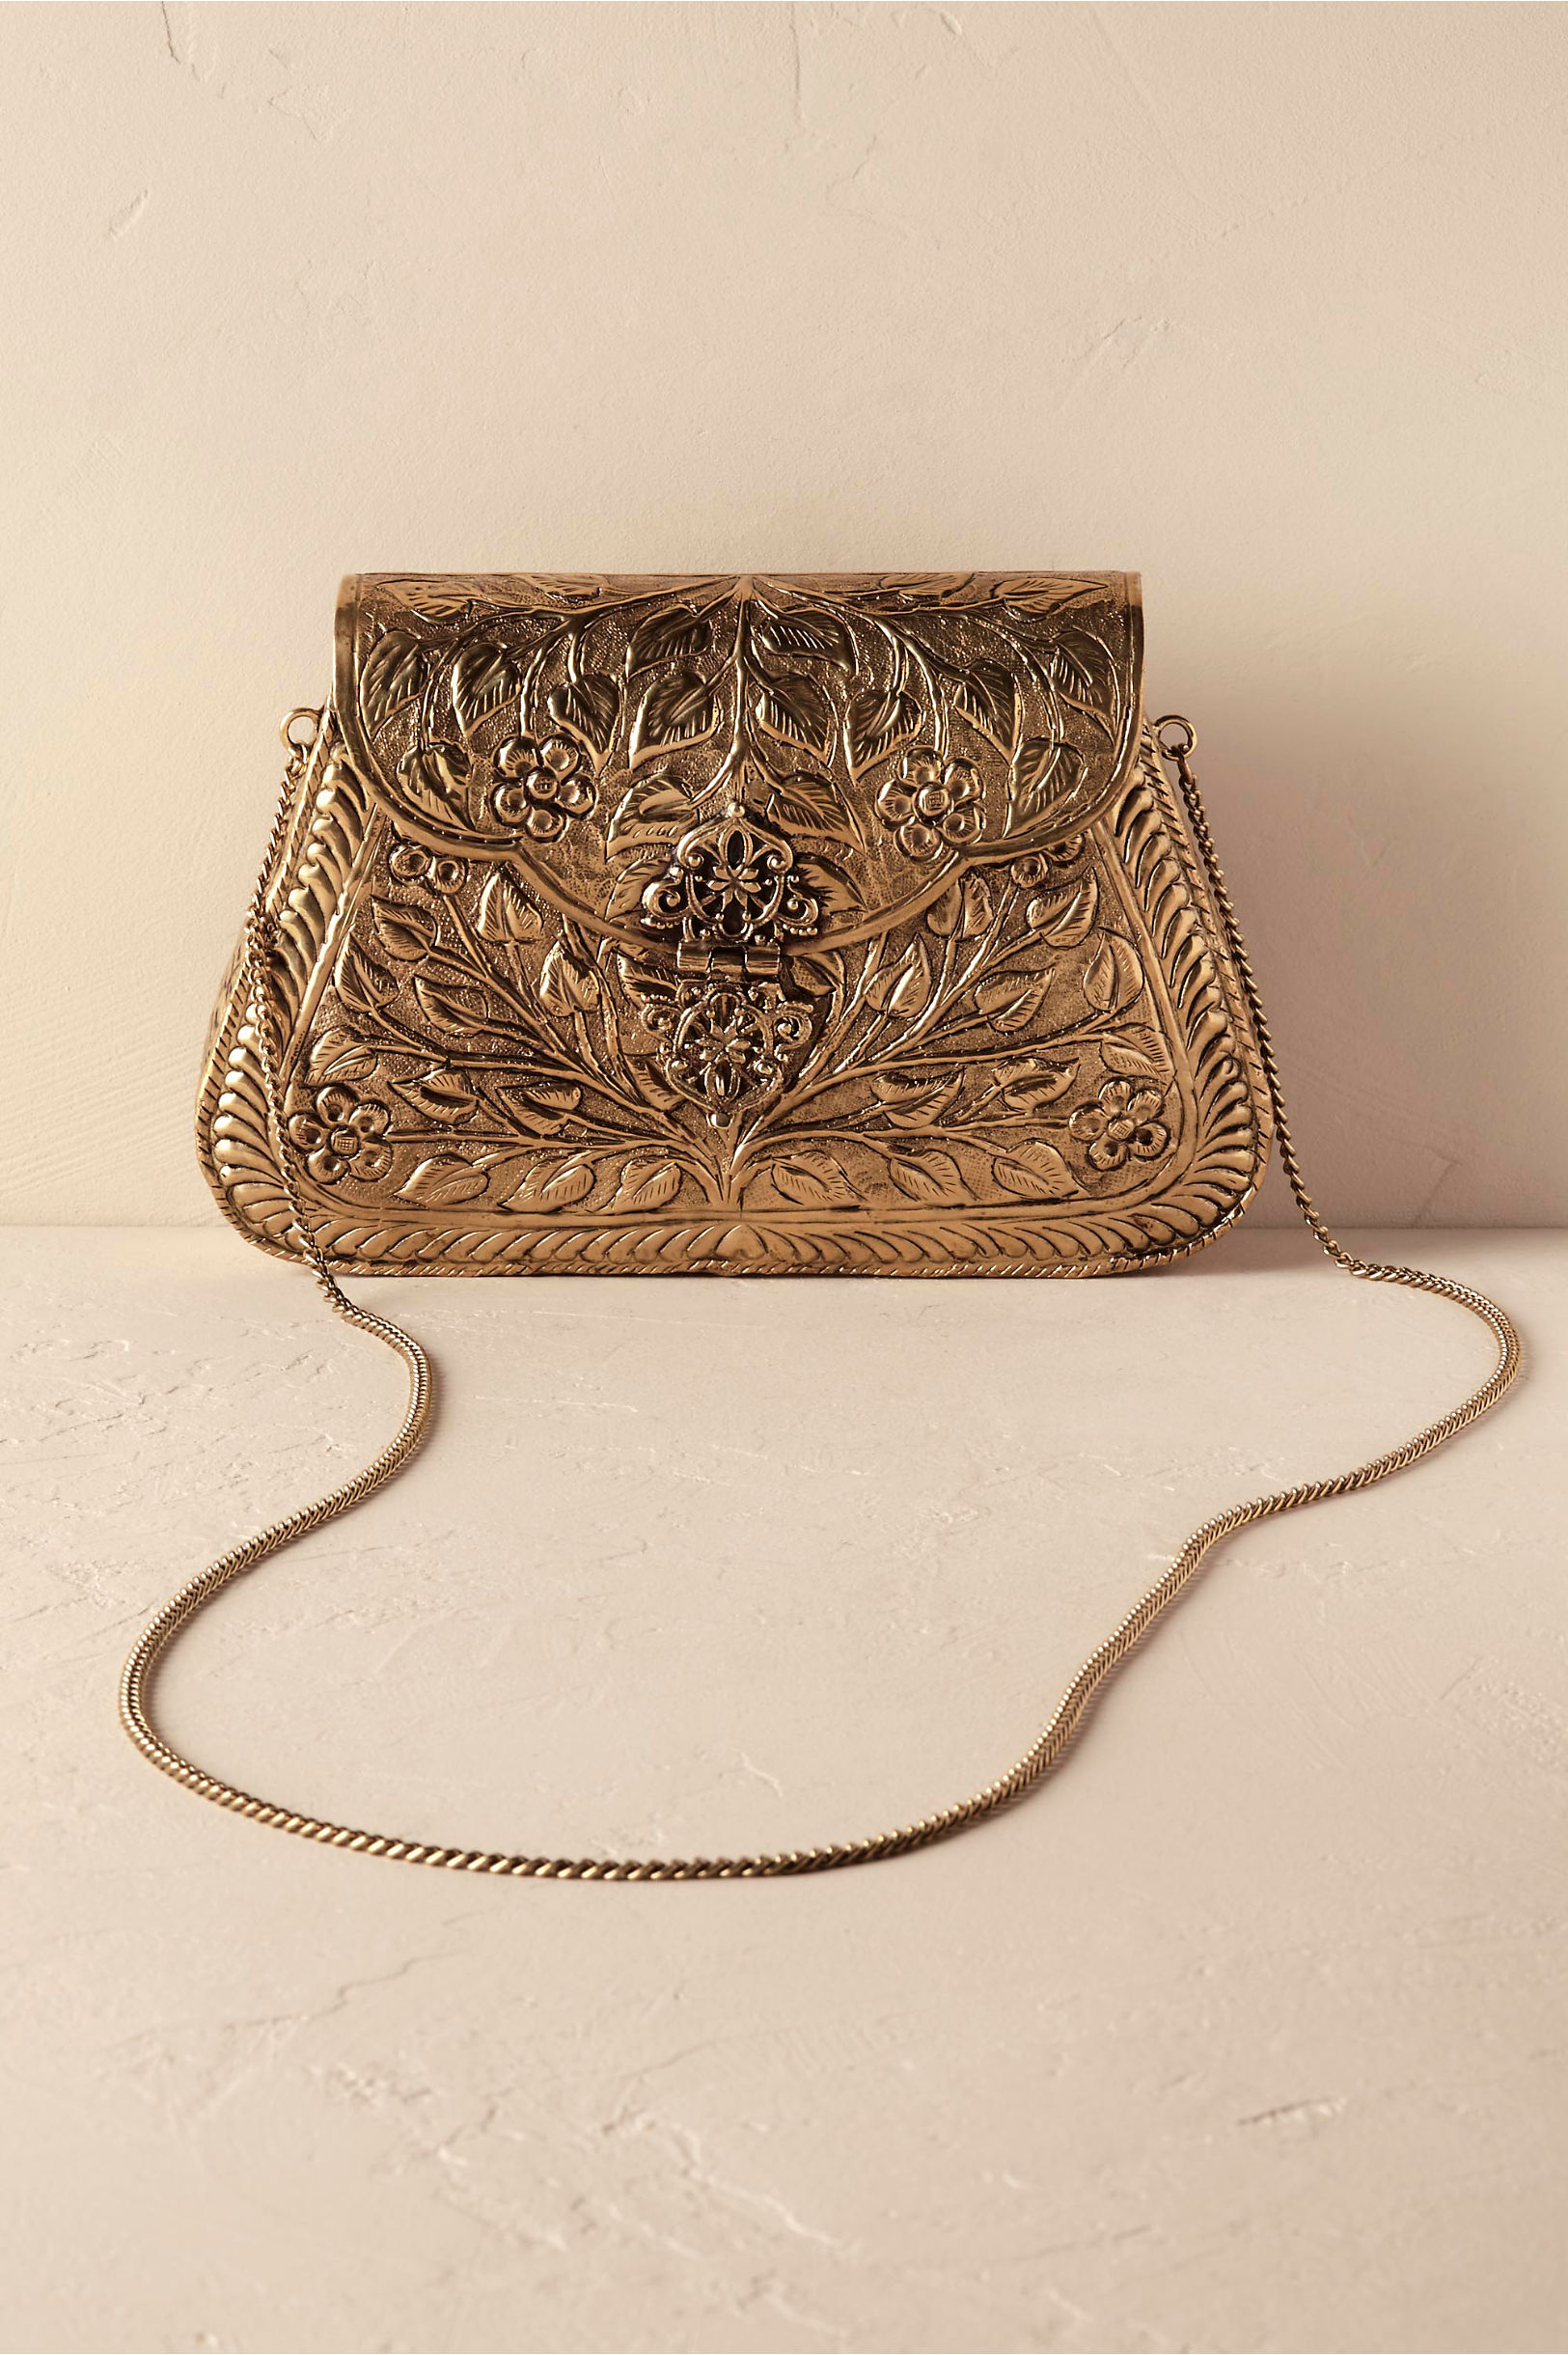 Vintage & Retro Handbags, Purses, Wallets, Bags Brienne Clutch $150.00 AT vintagedancer.com